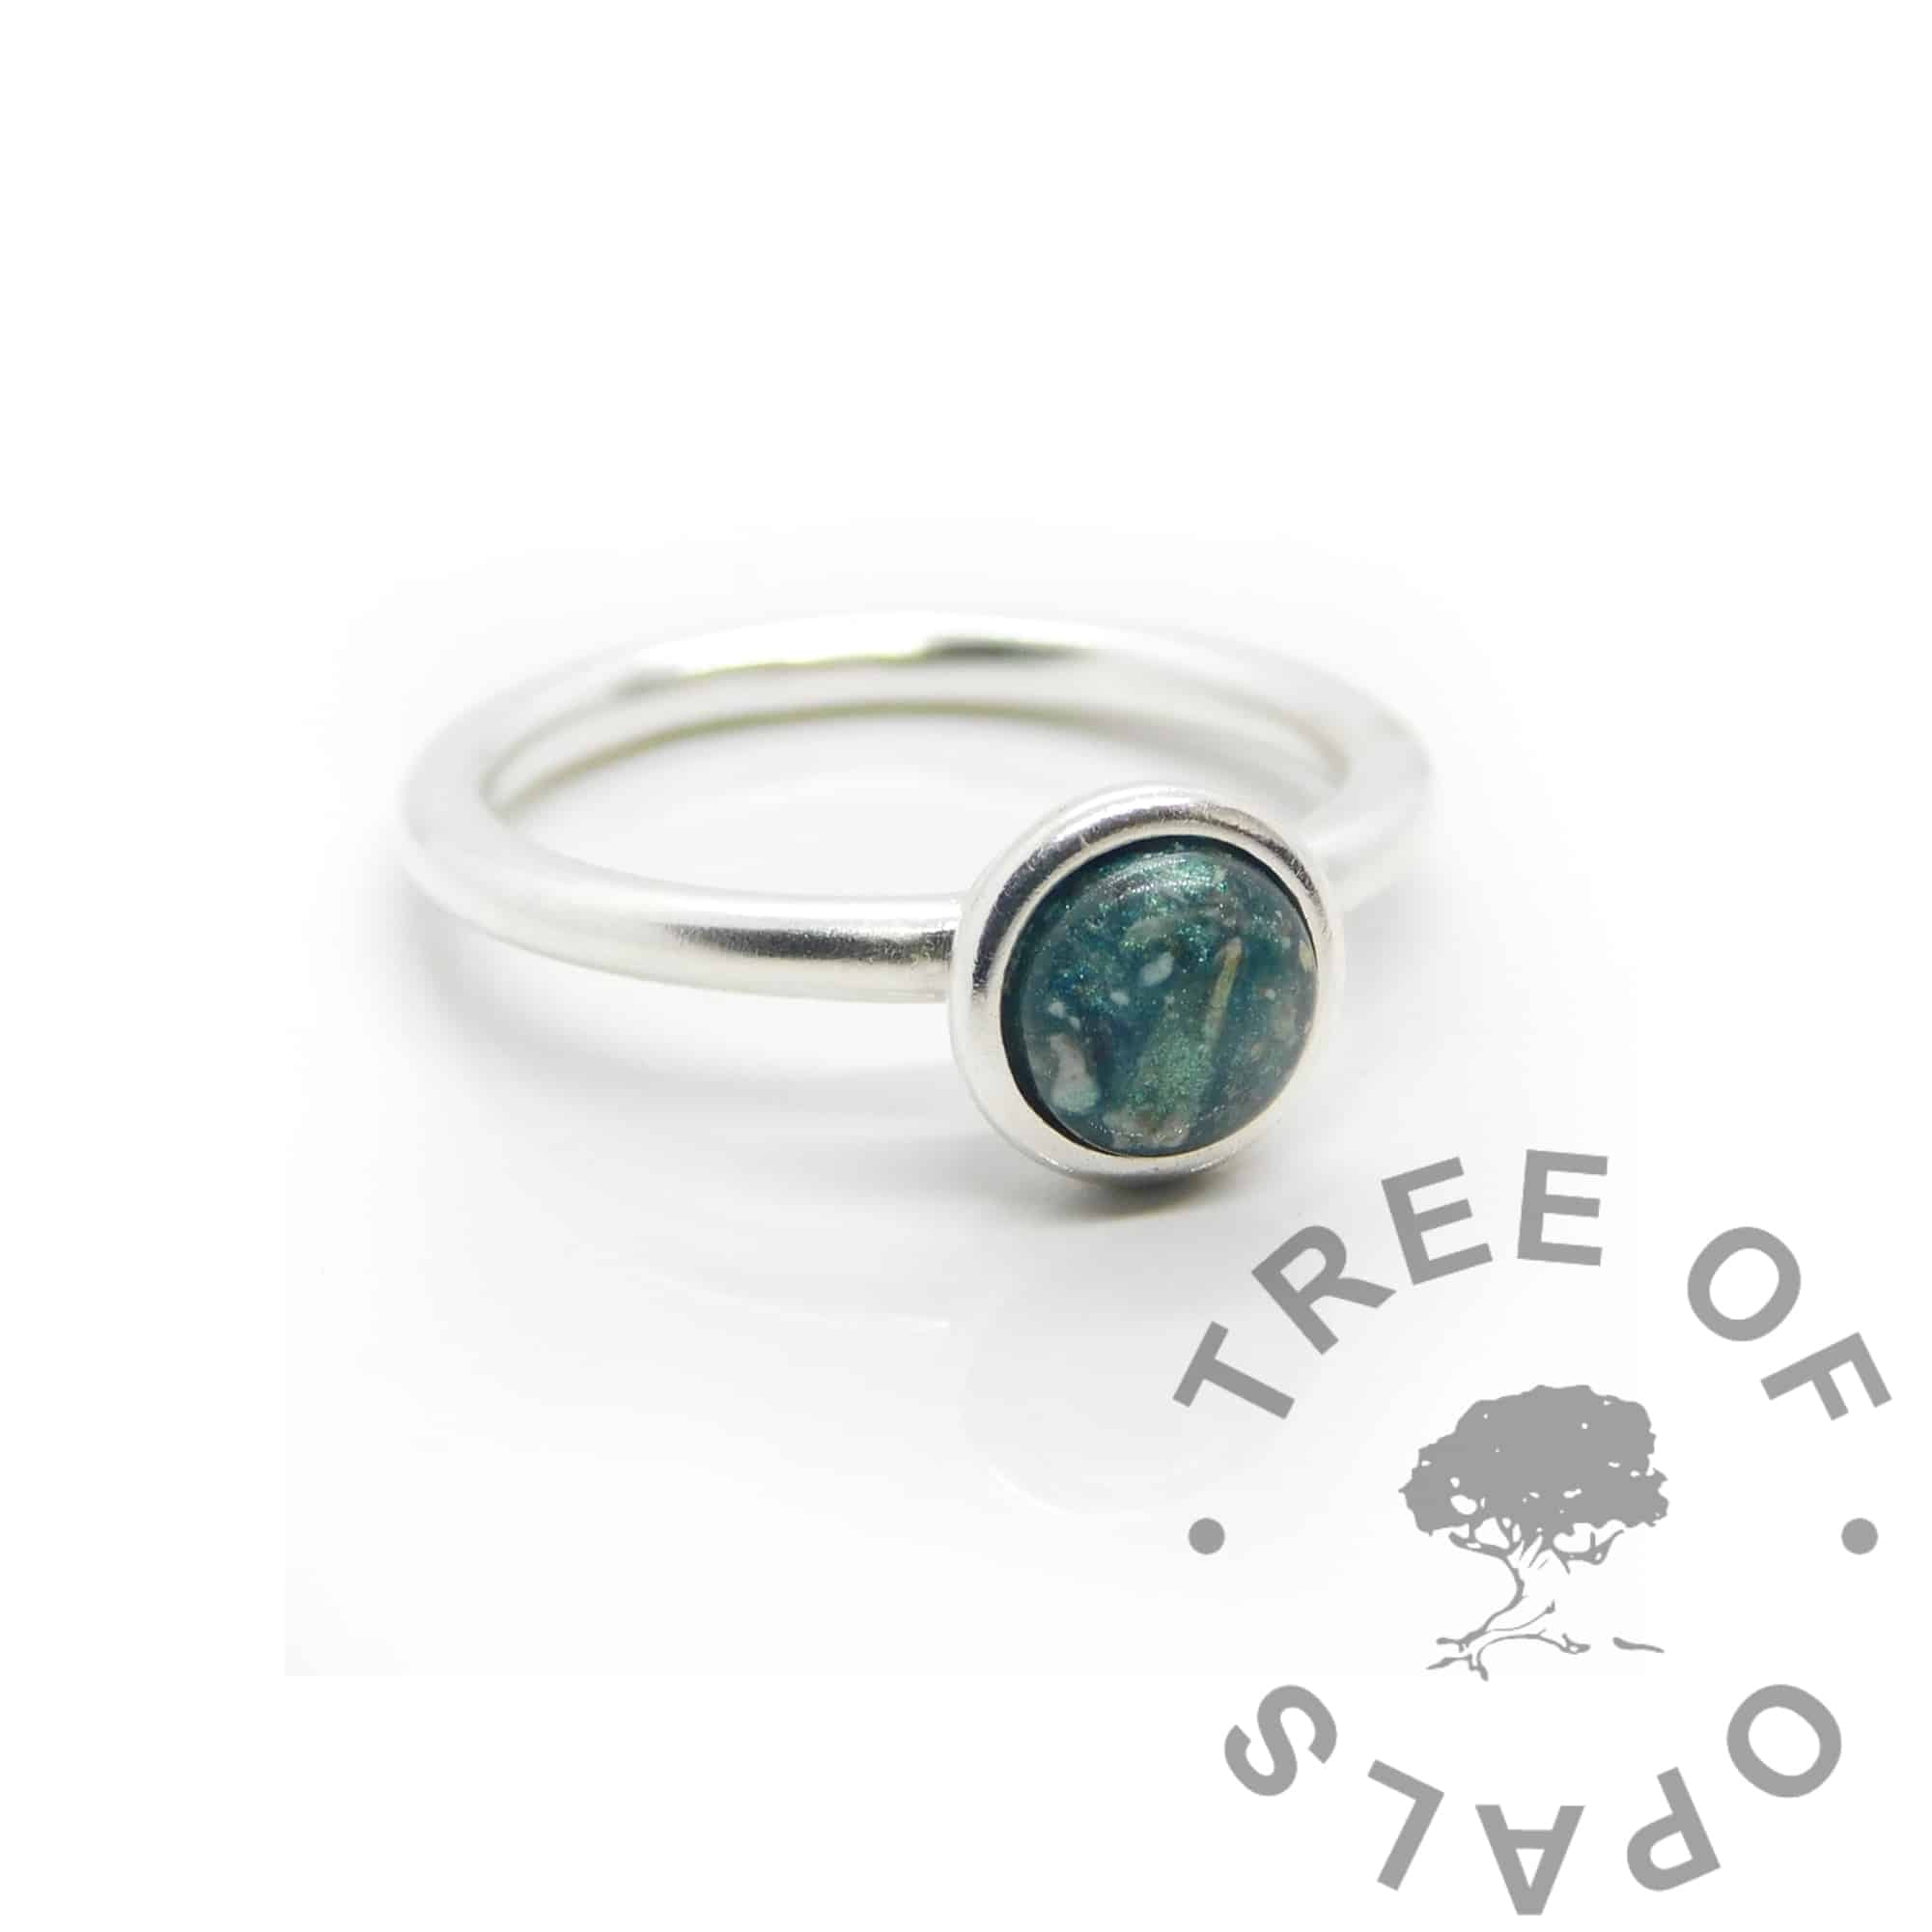 Ayla cremation ashes ring Teal ashes Ayla Solitaire Ring, cremation ashes and resin, with mermaid teal resin sparkle mix made into a cabochon (stone) and set into the ring with glue. Cast Argentium 935 anti-tarnish silver (higher purity than sterling)